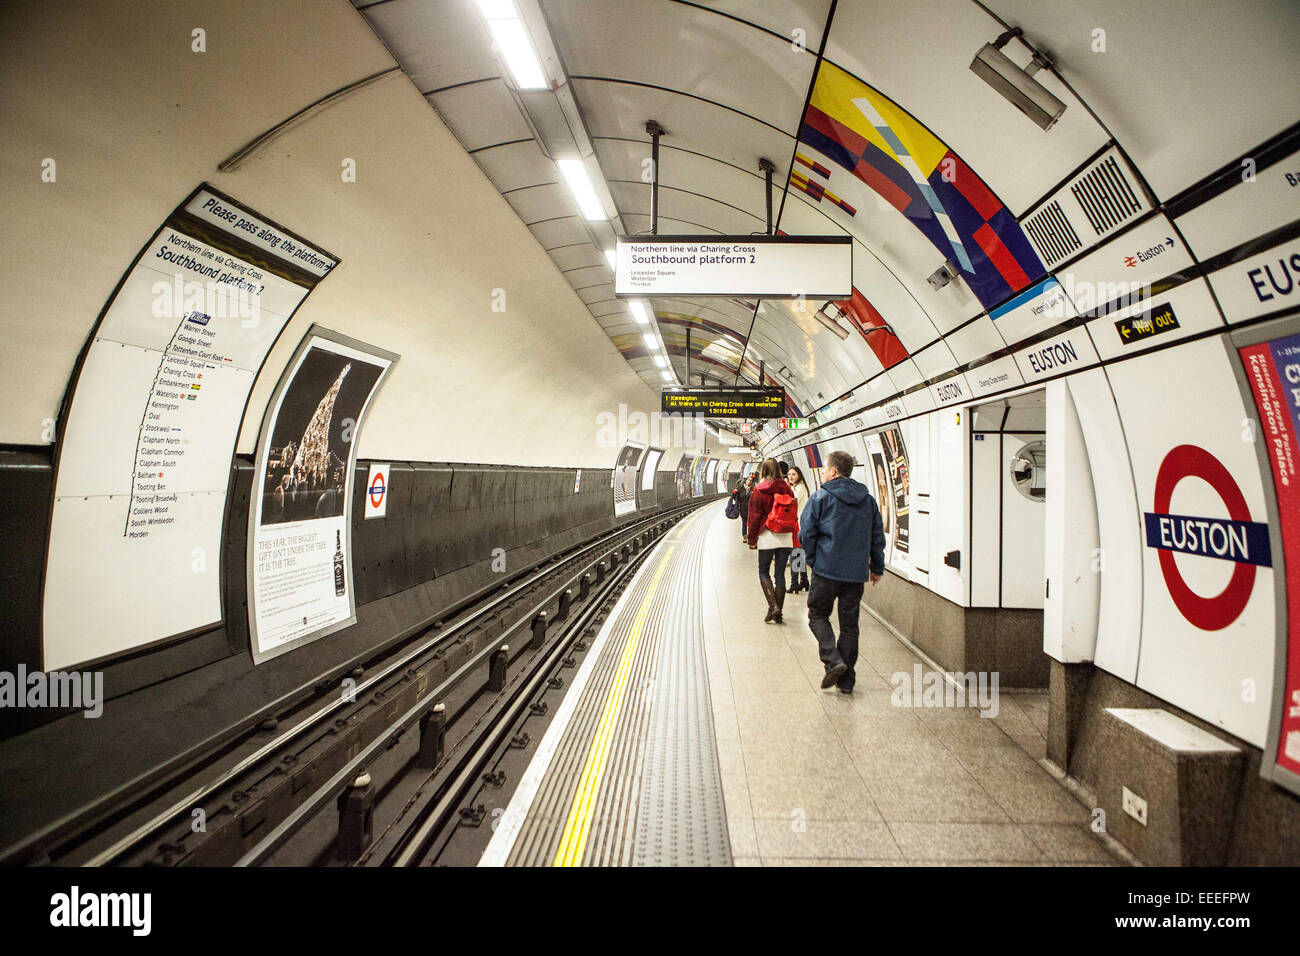 Southbound platform of the Northern Line, Charing Cross Branch - Stock Image